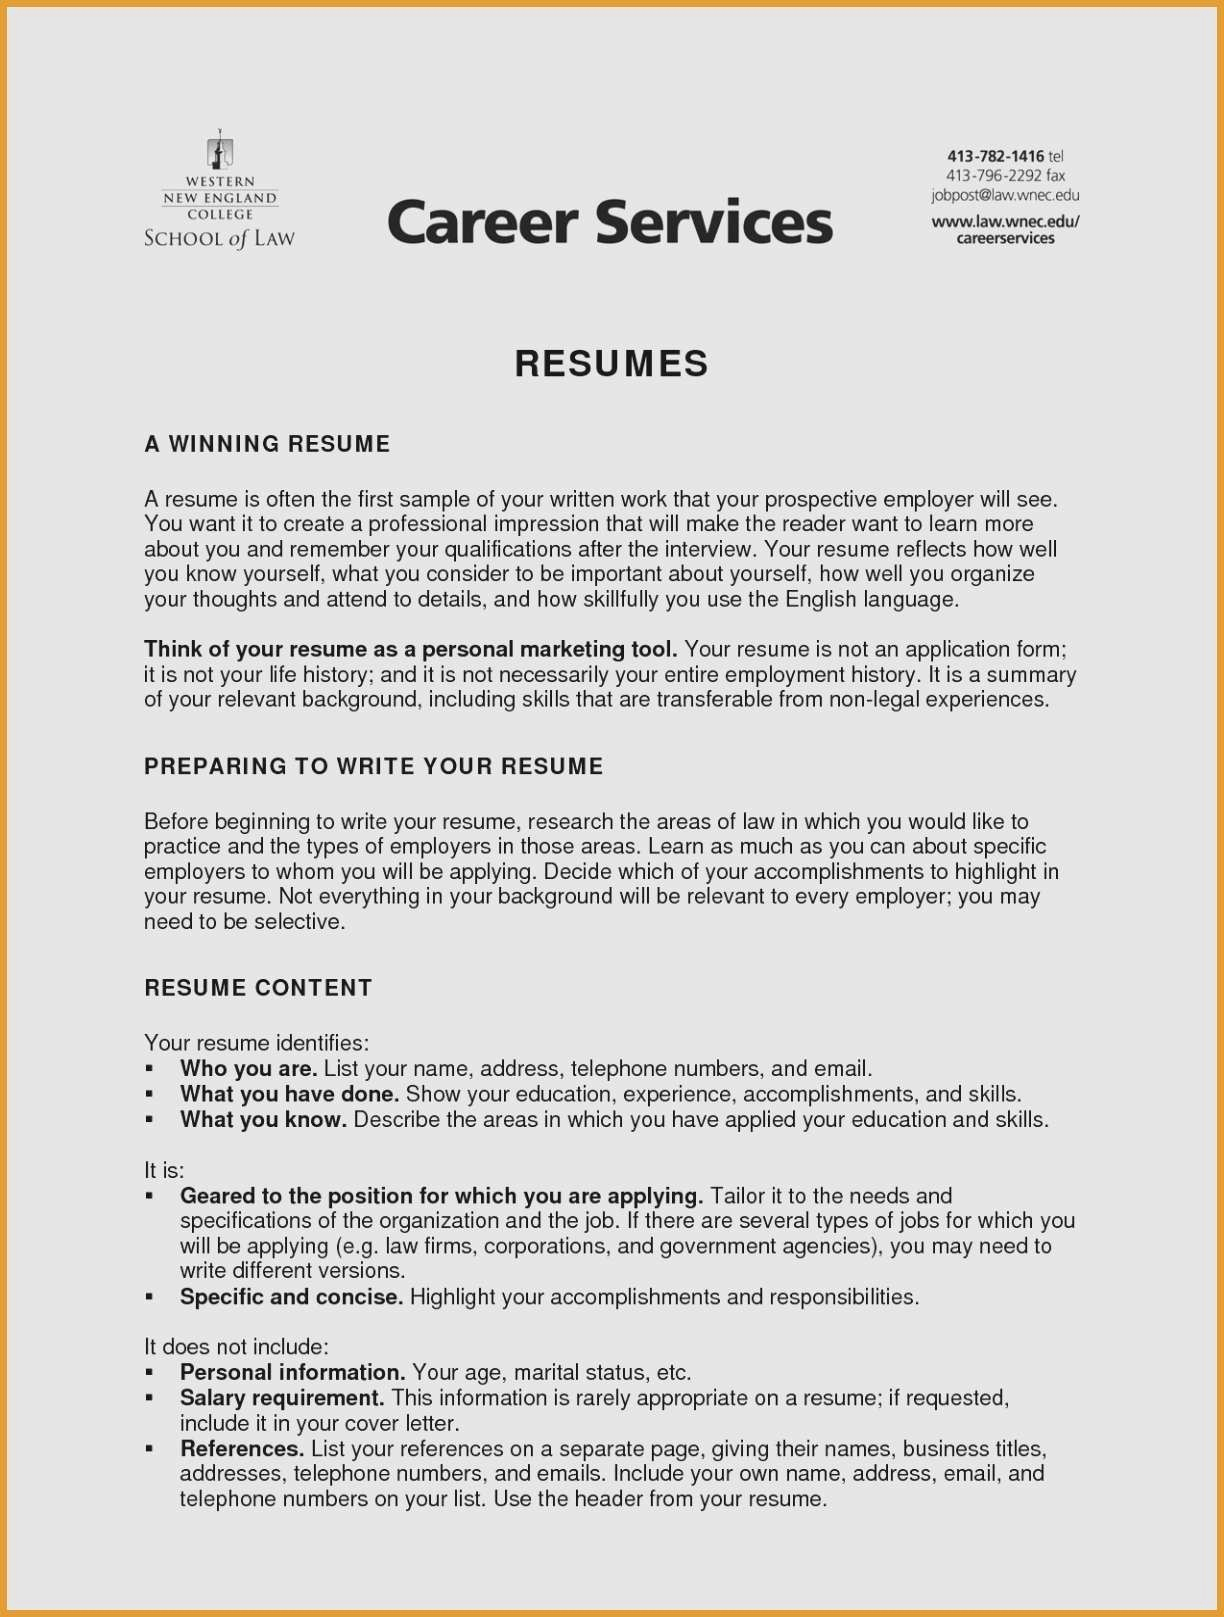 Entry Level Resume Template - Entry Level Marketing Resume Type A Resume Beautiful New Entry Level